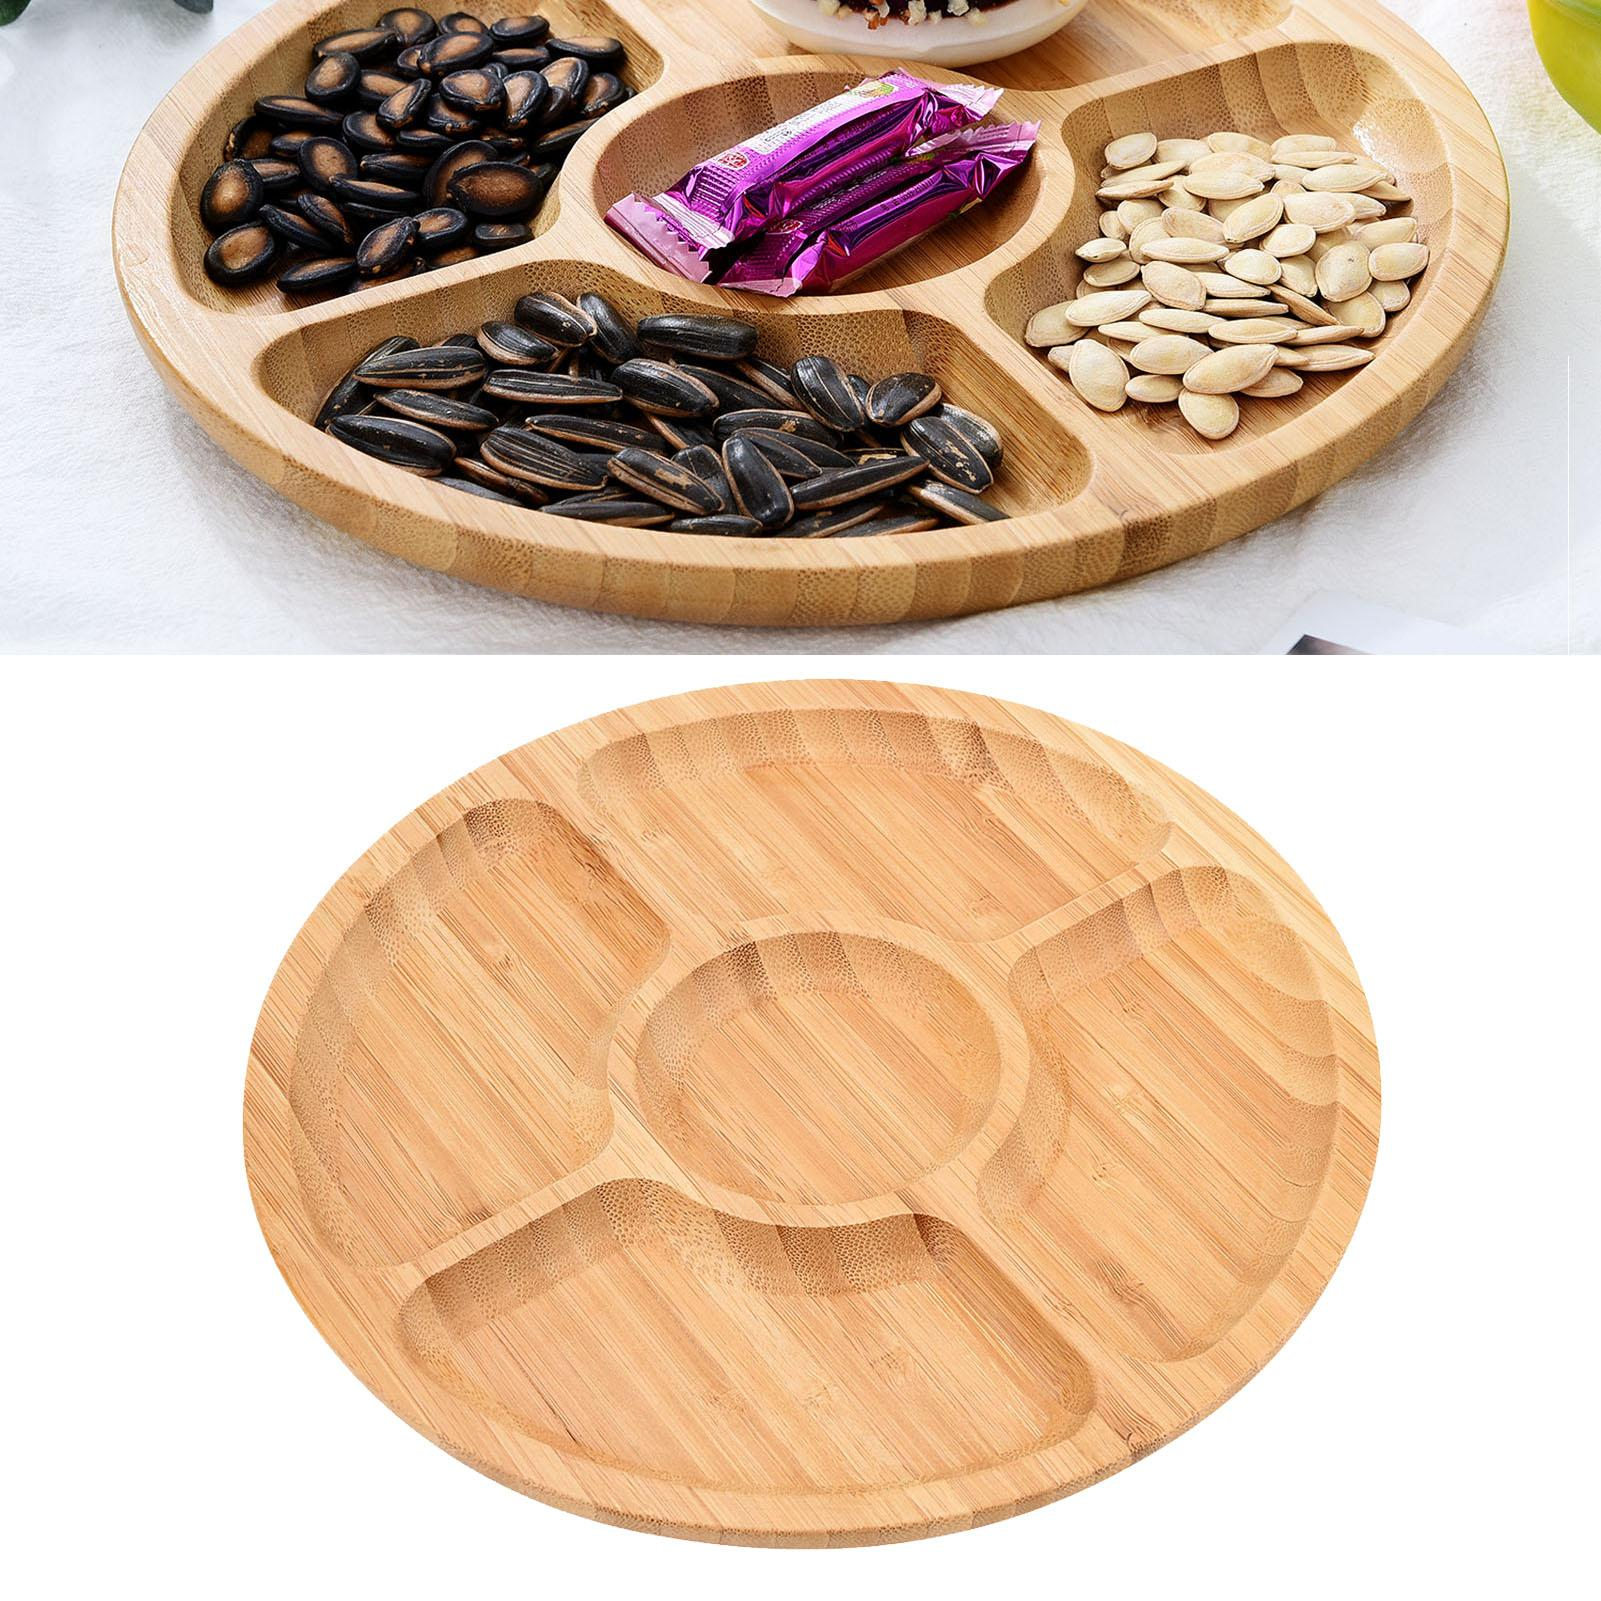 5 Grids Wood Round Shape Fruit Snack Bread Nuts Refreshment Holder Storage Plate